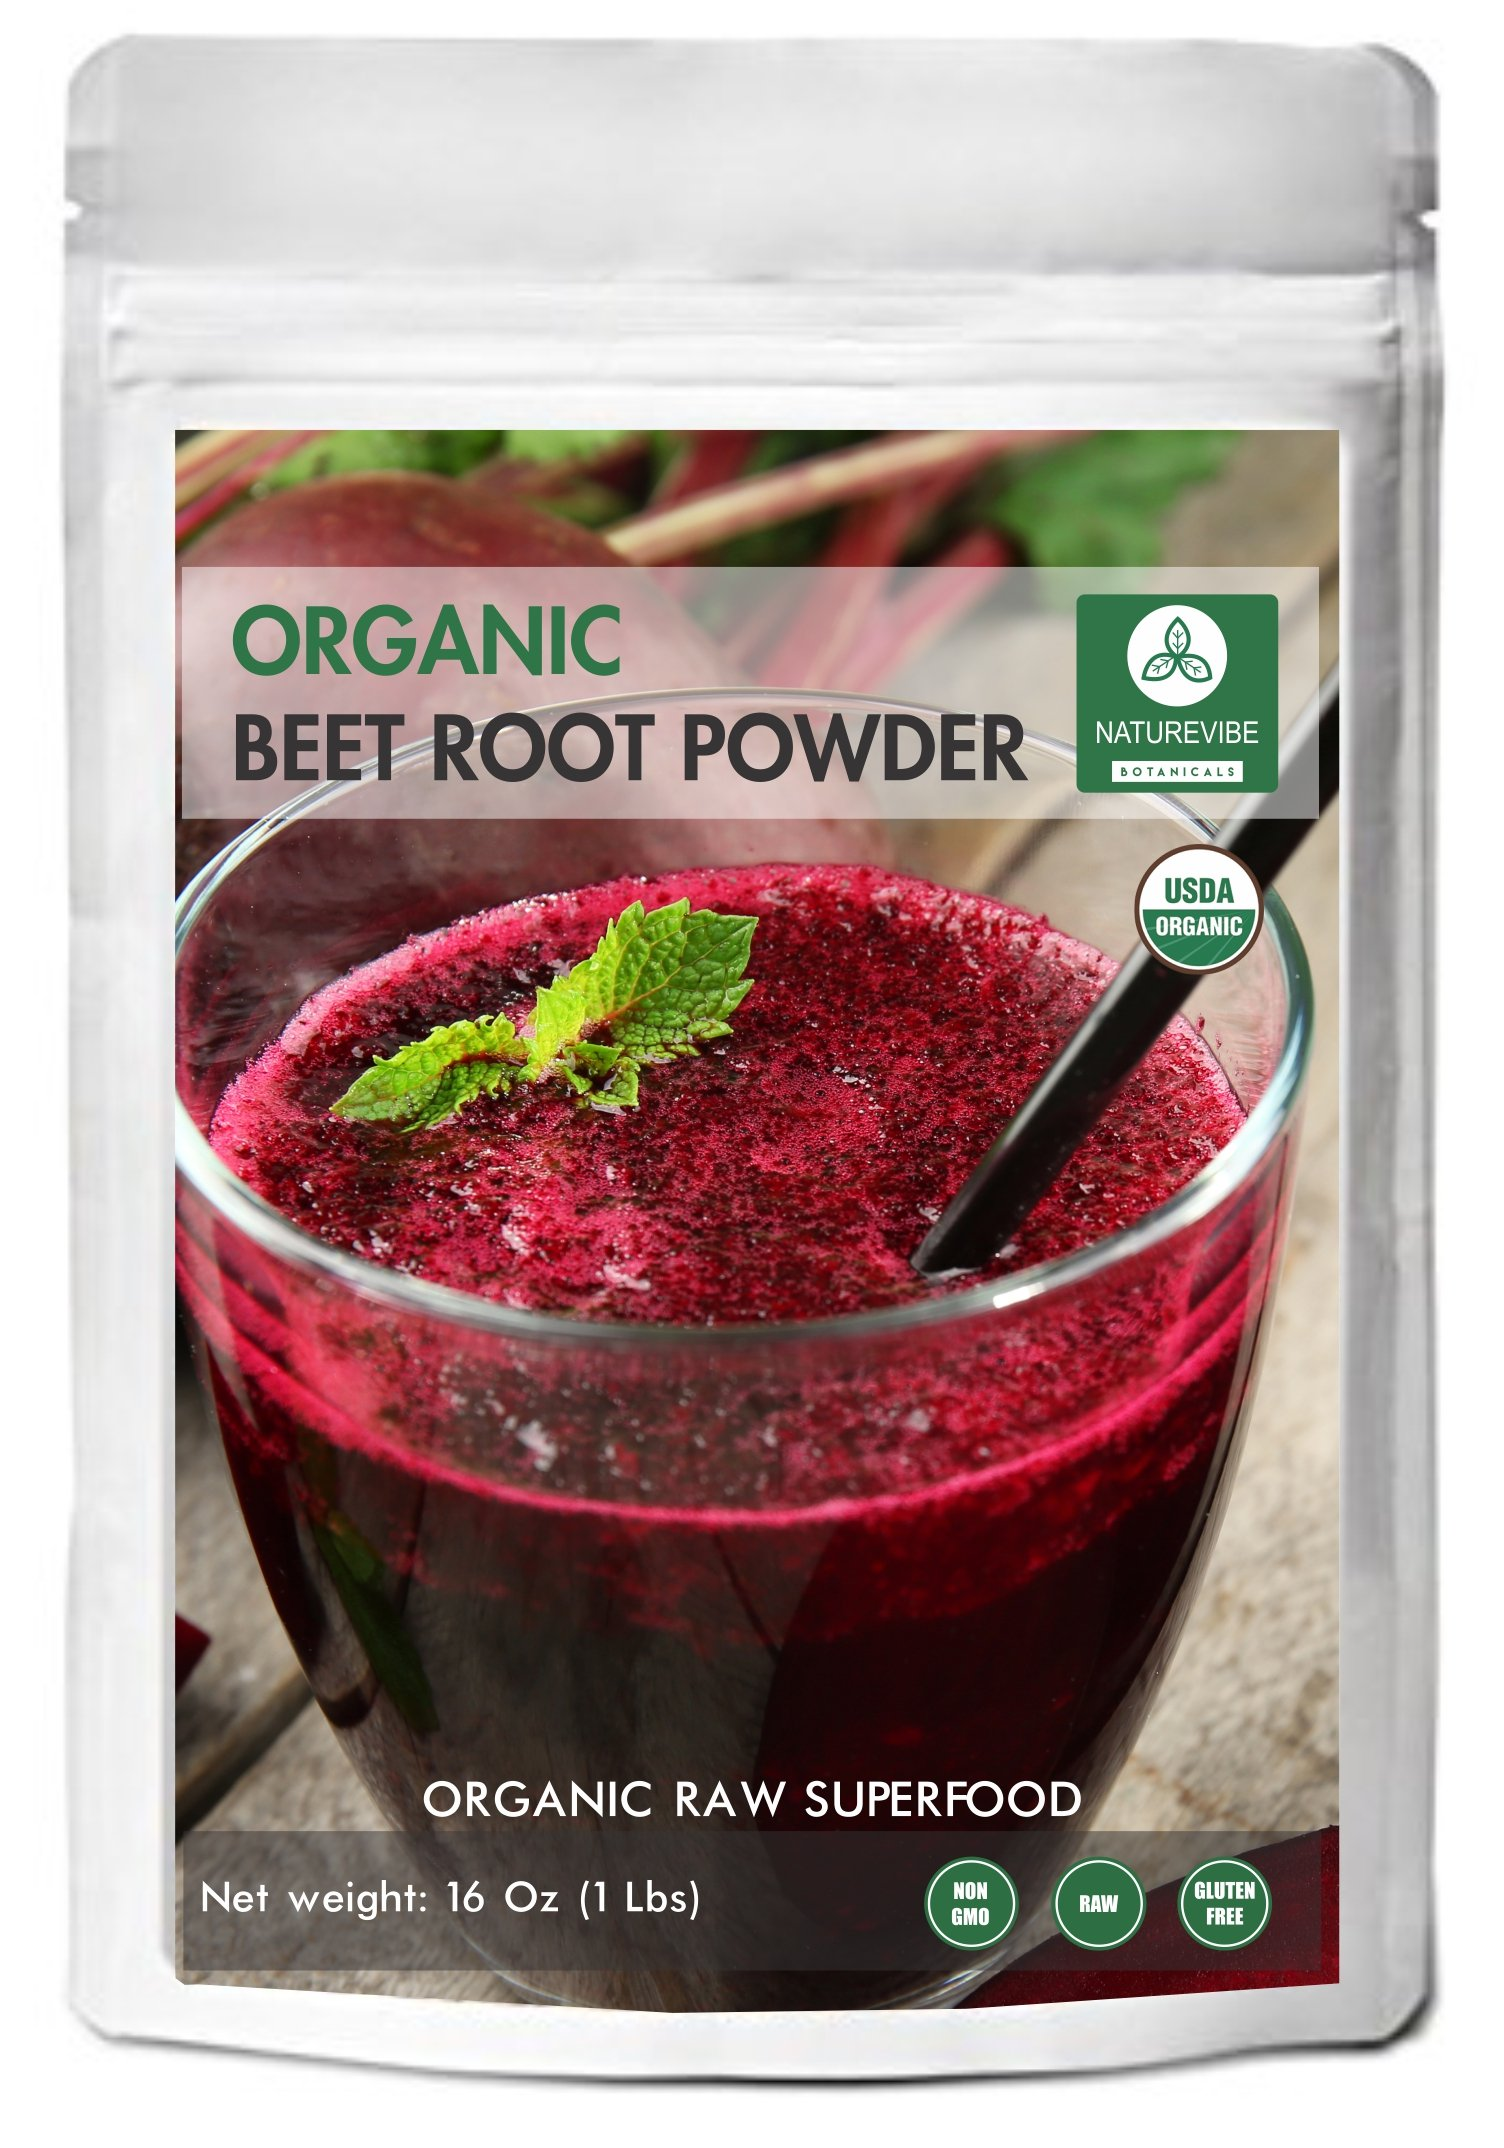 Organic Beet Root Powder (1 lb) by Naturevibe Botanicals, Raw & Non-GMO | Nitric Oxide Booster | Boost Stamina and Increases Energy [Packaging May Vary] by Naturevibe Botanicals